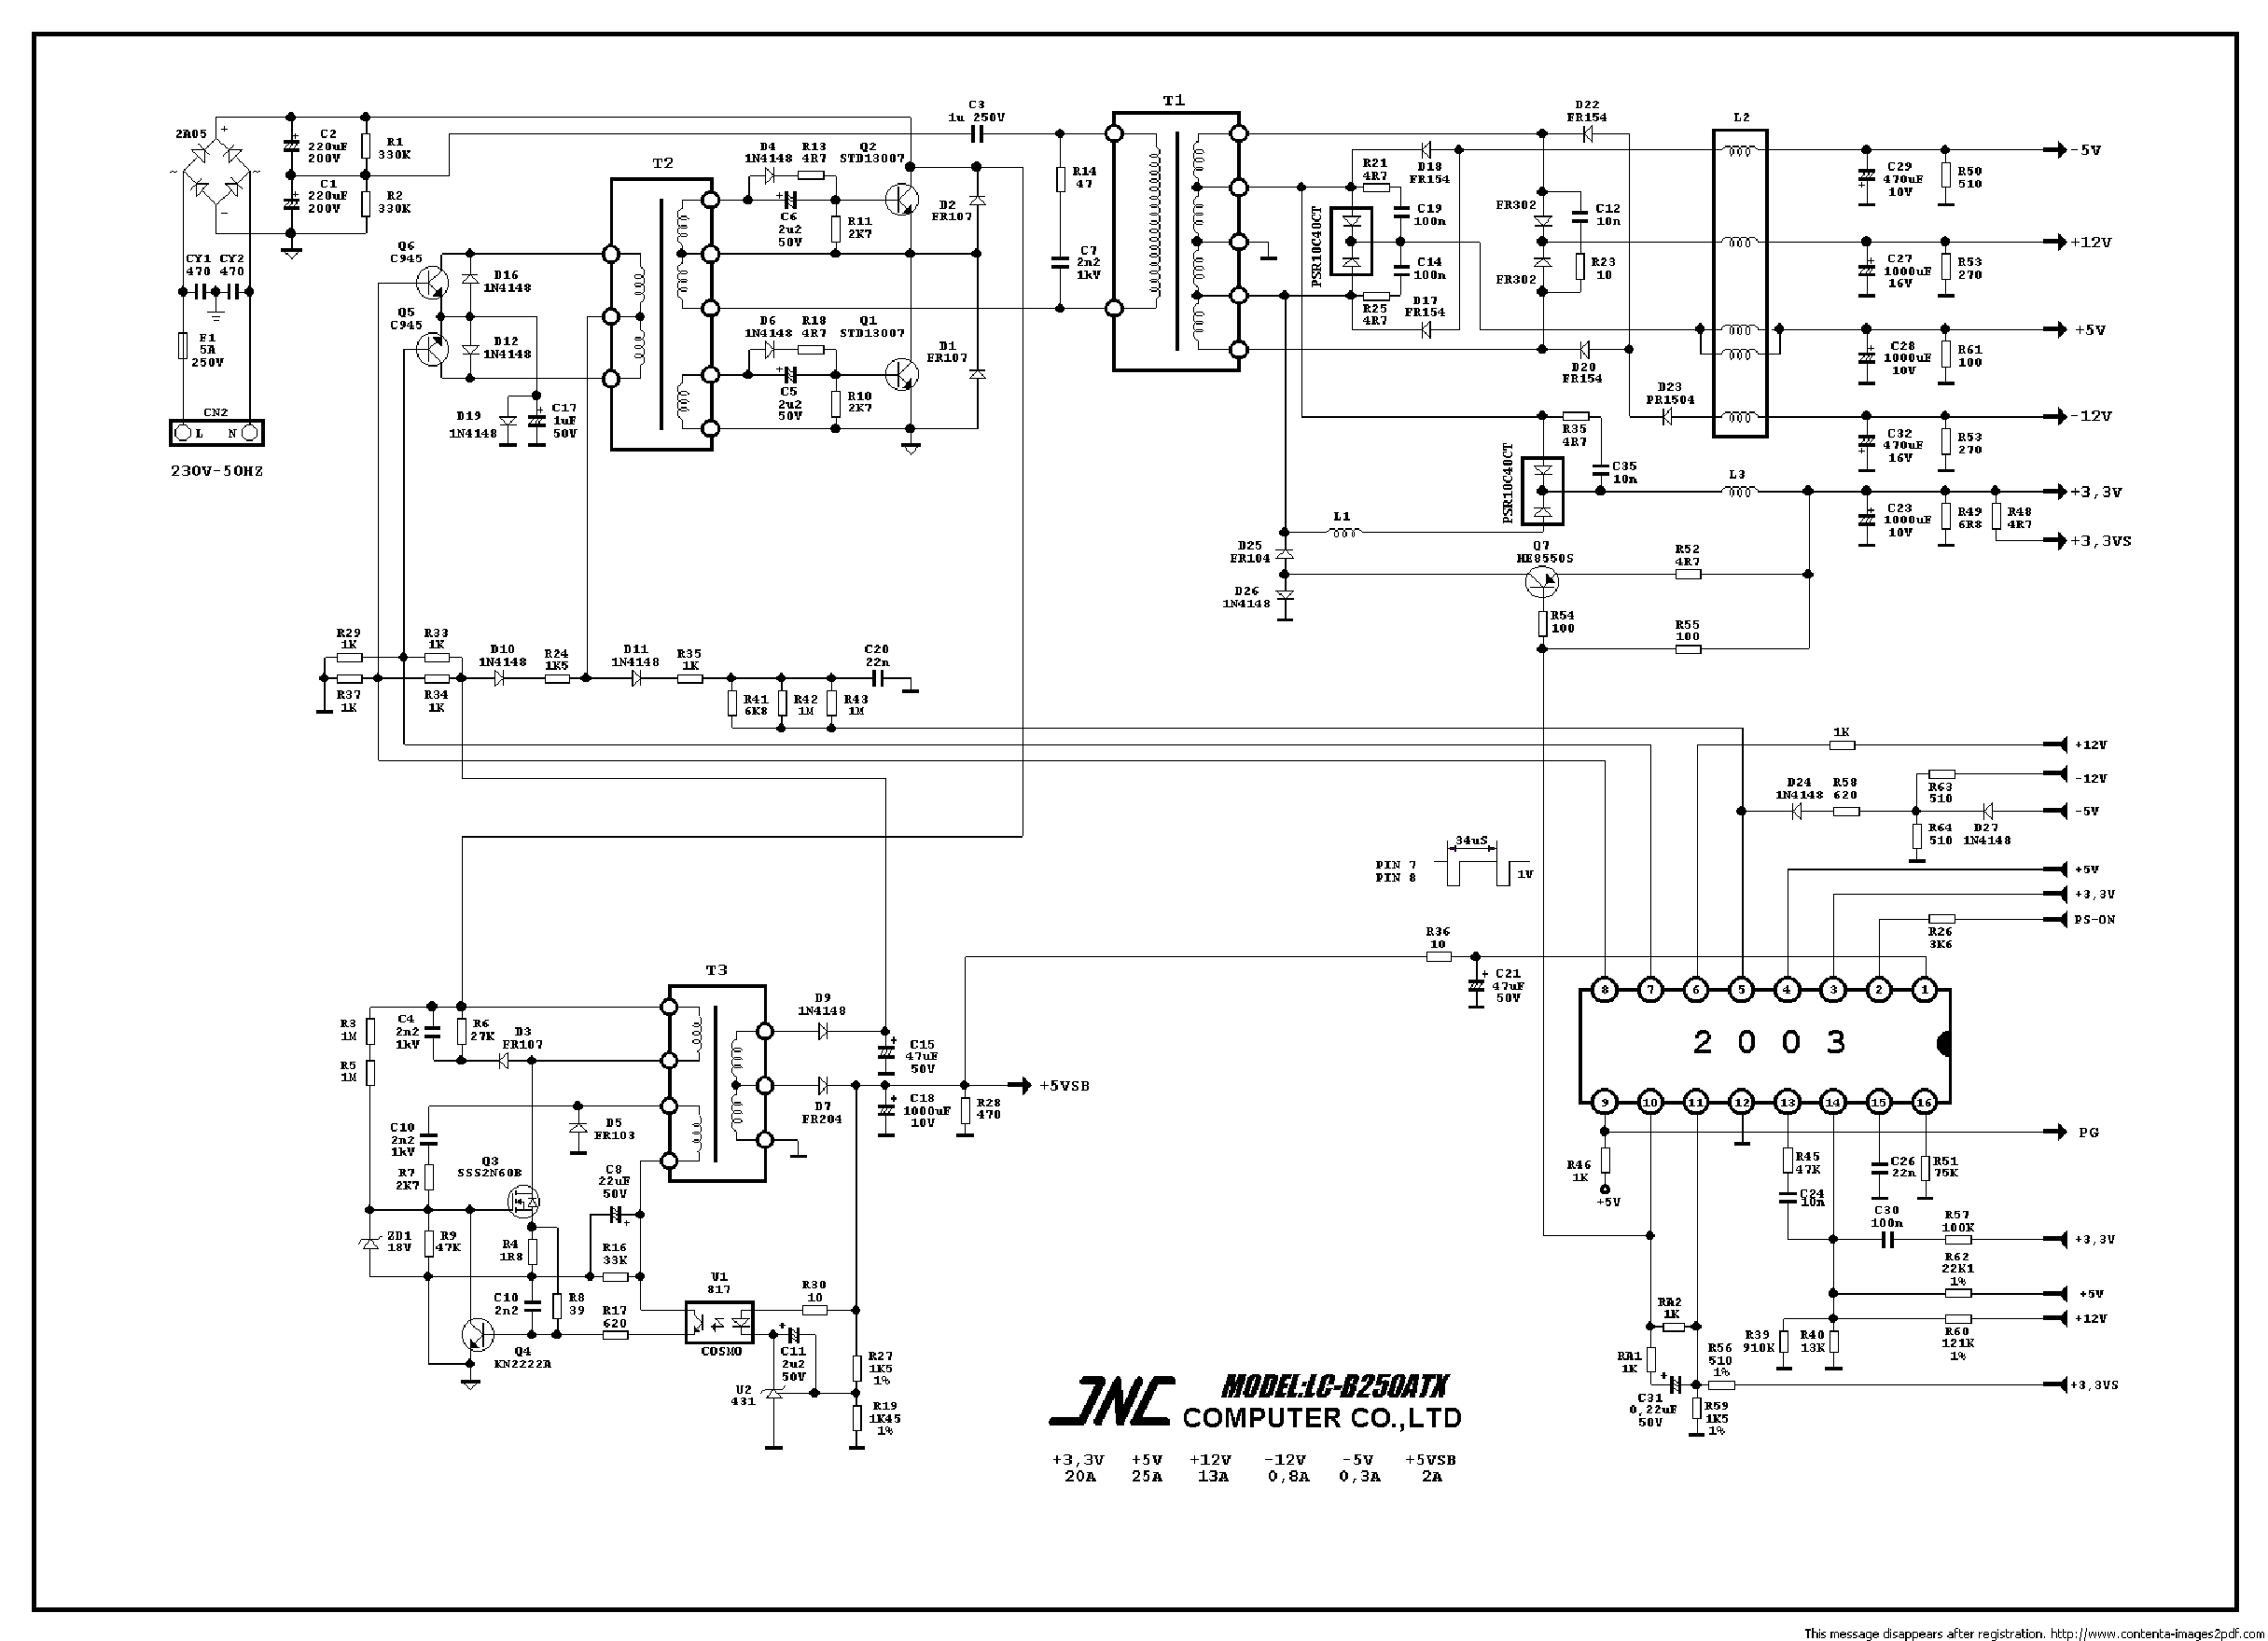 Wiring Diagram For Dell Power Supply Free Download Jnc Lc B250atx Pc Sch Service Manual Downloadjnc